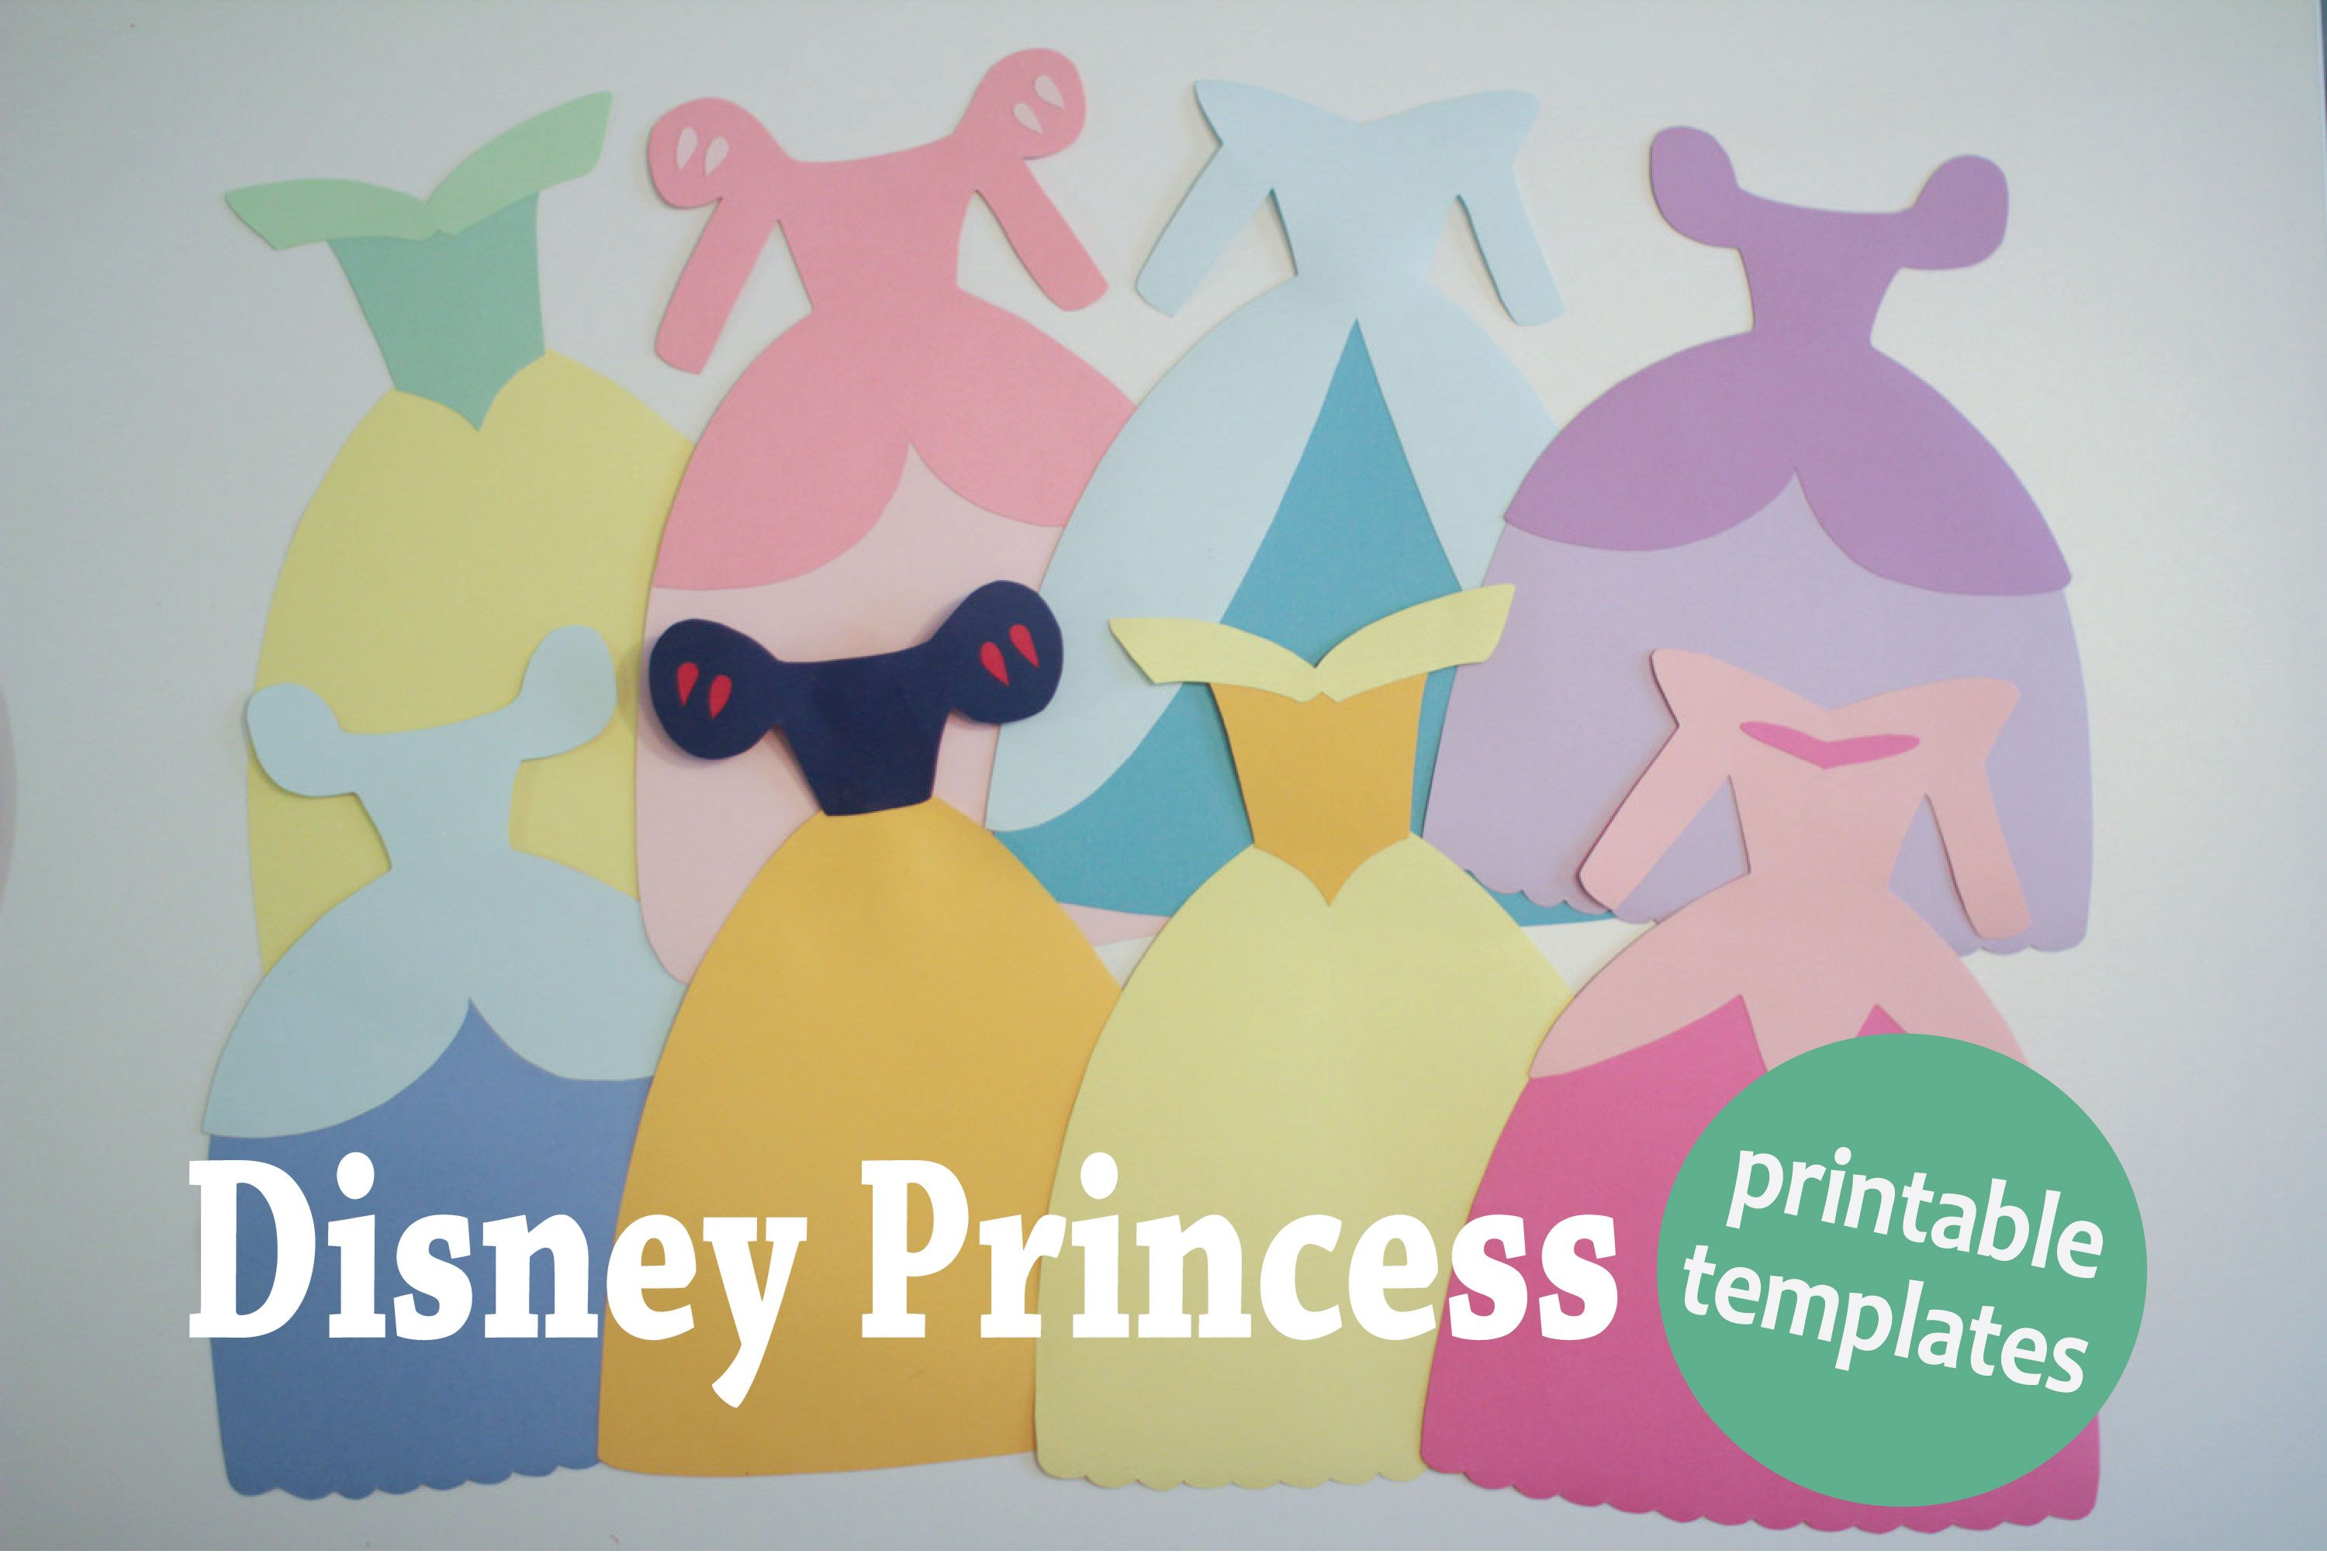 Disney Princess Dress Paper Templates - Hot Hands Bakery | Disney - Free Printable Princess Birthday Banner